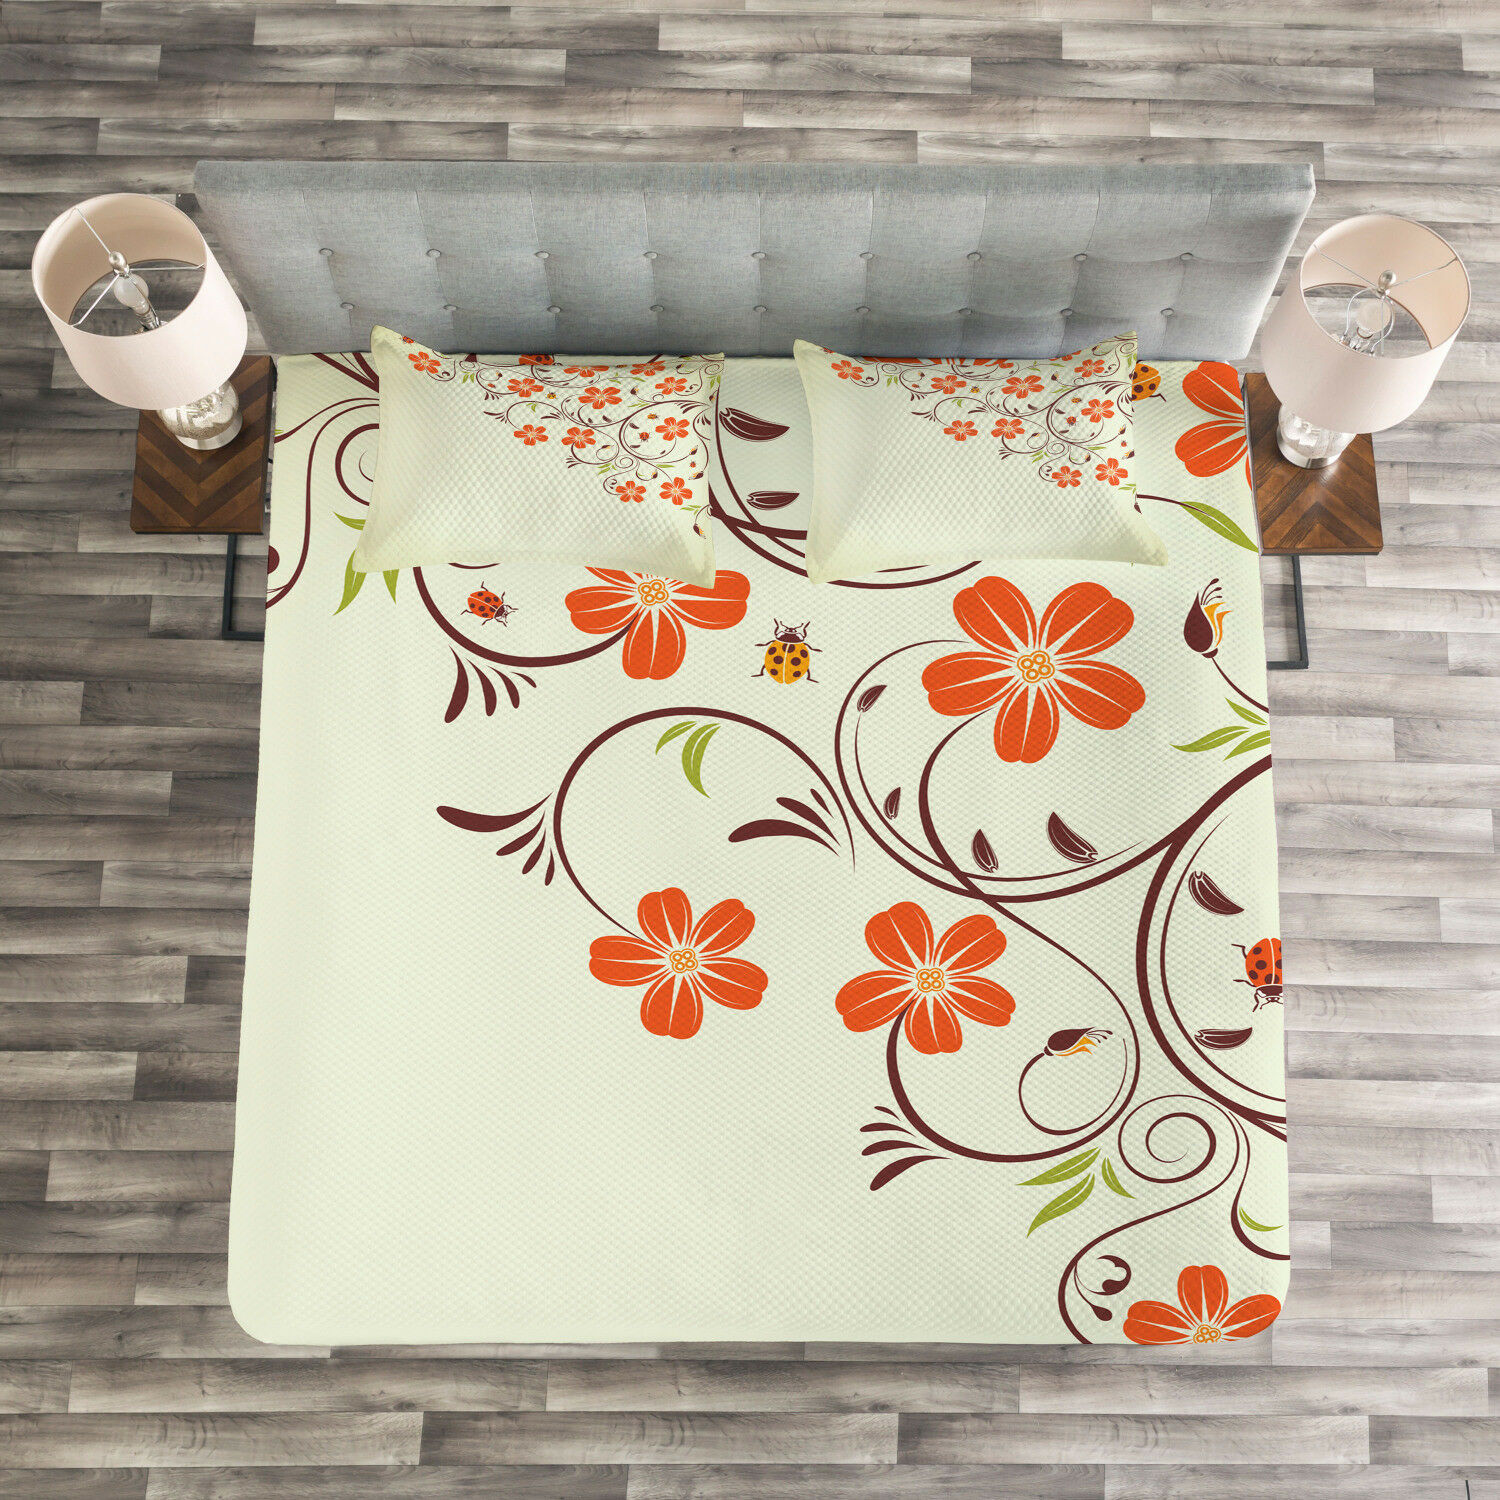 Floral Quilted Bedspread & Pillow Shams Set, Ladybugs Flowers Spring Print